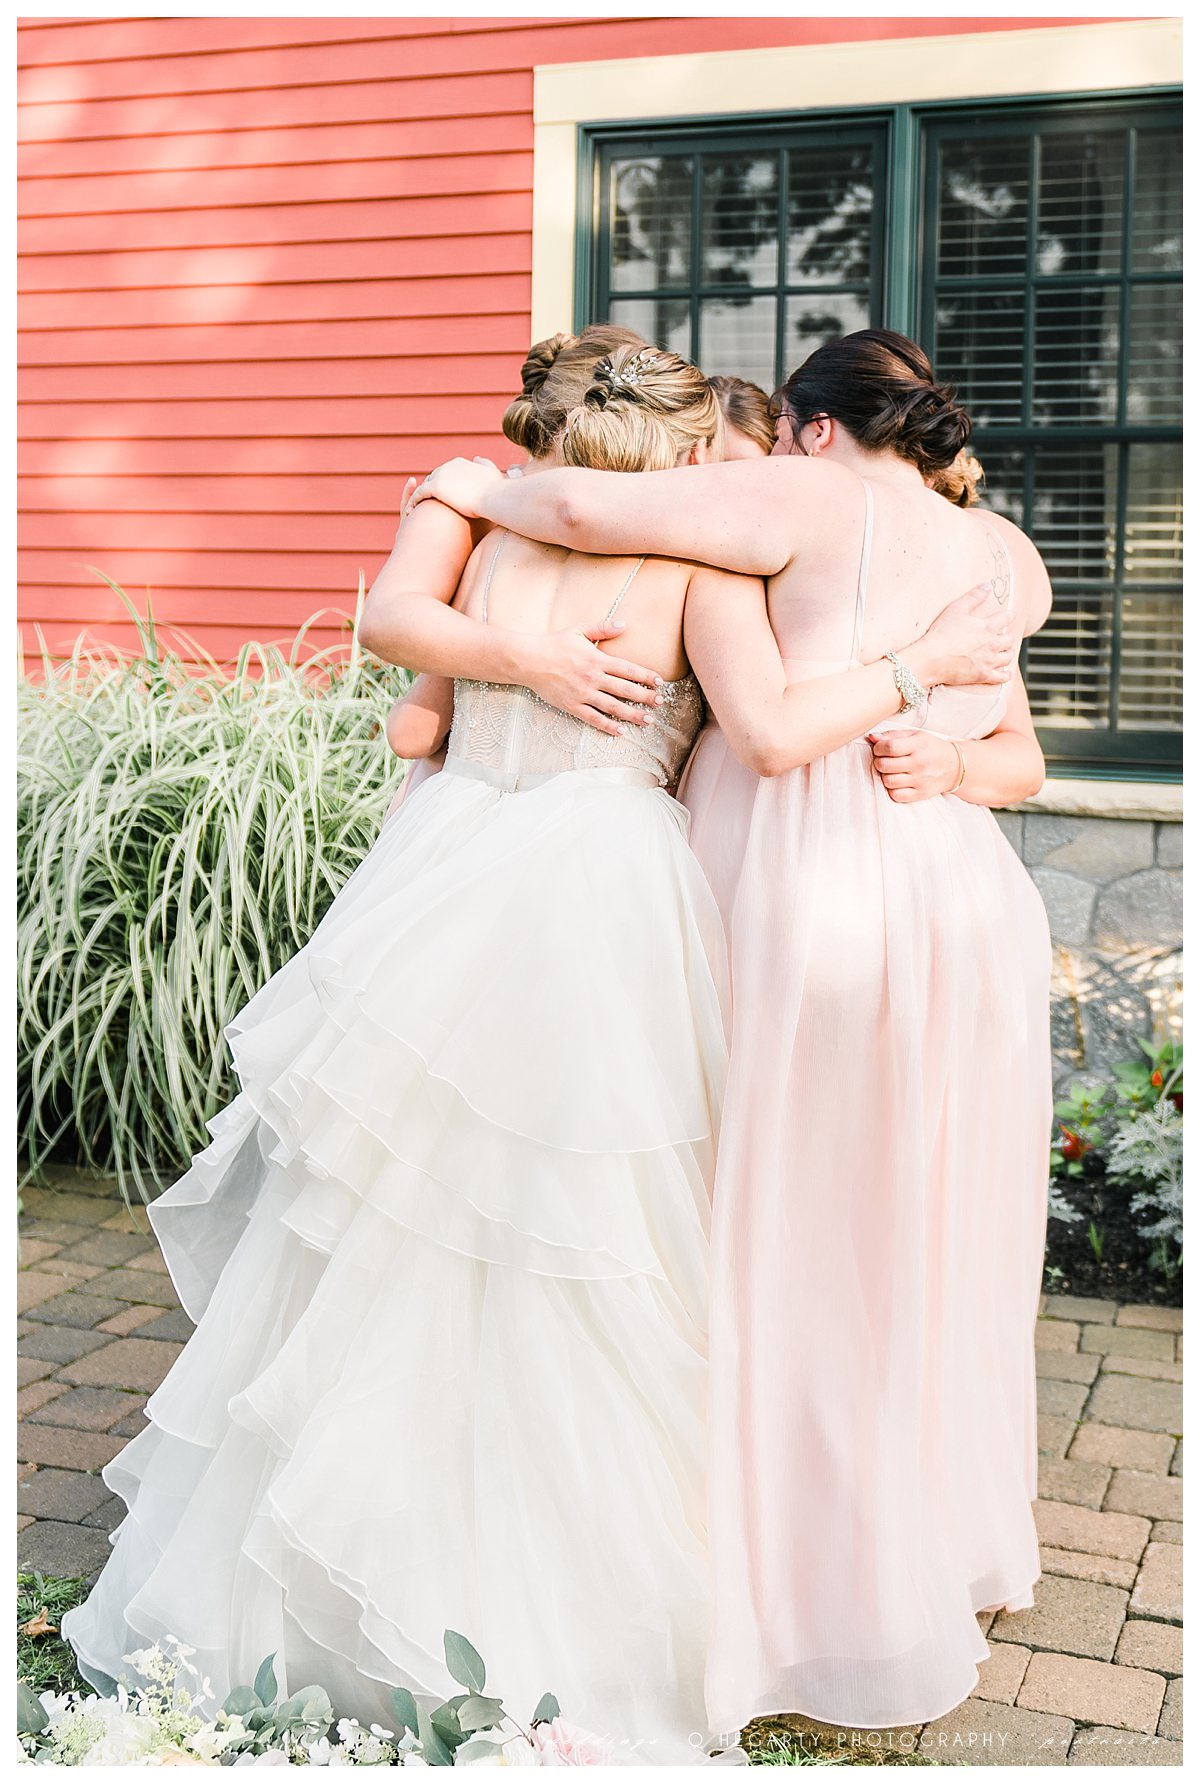 Q Hegarty Photography summer wedding 2018 at The Red Barn at Outlook Farm South Berwick ME 0068 Boston Fine Art Wedding Photographer - Qian Hegarty Photography